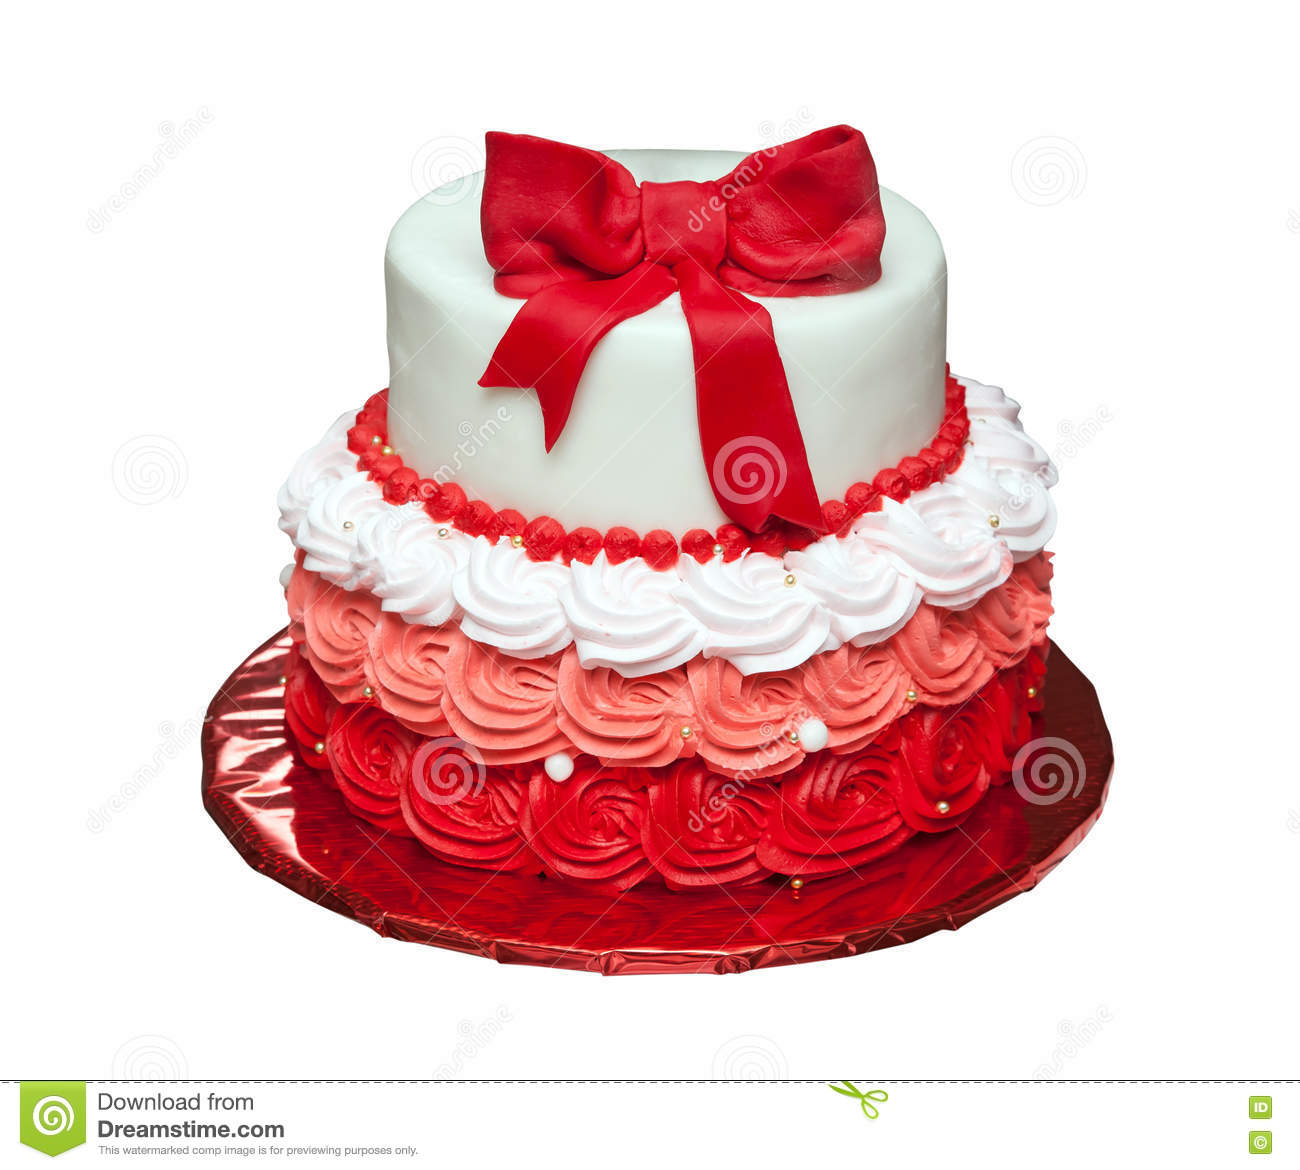 Birthday Cake With Bow On Top Isolated Stock Photo Image Of Gift